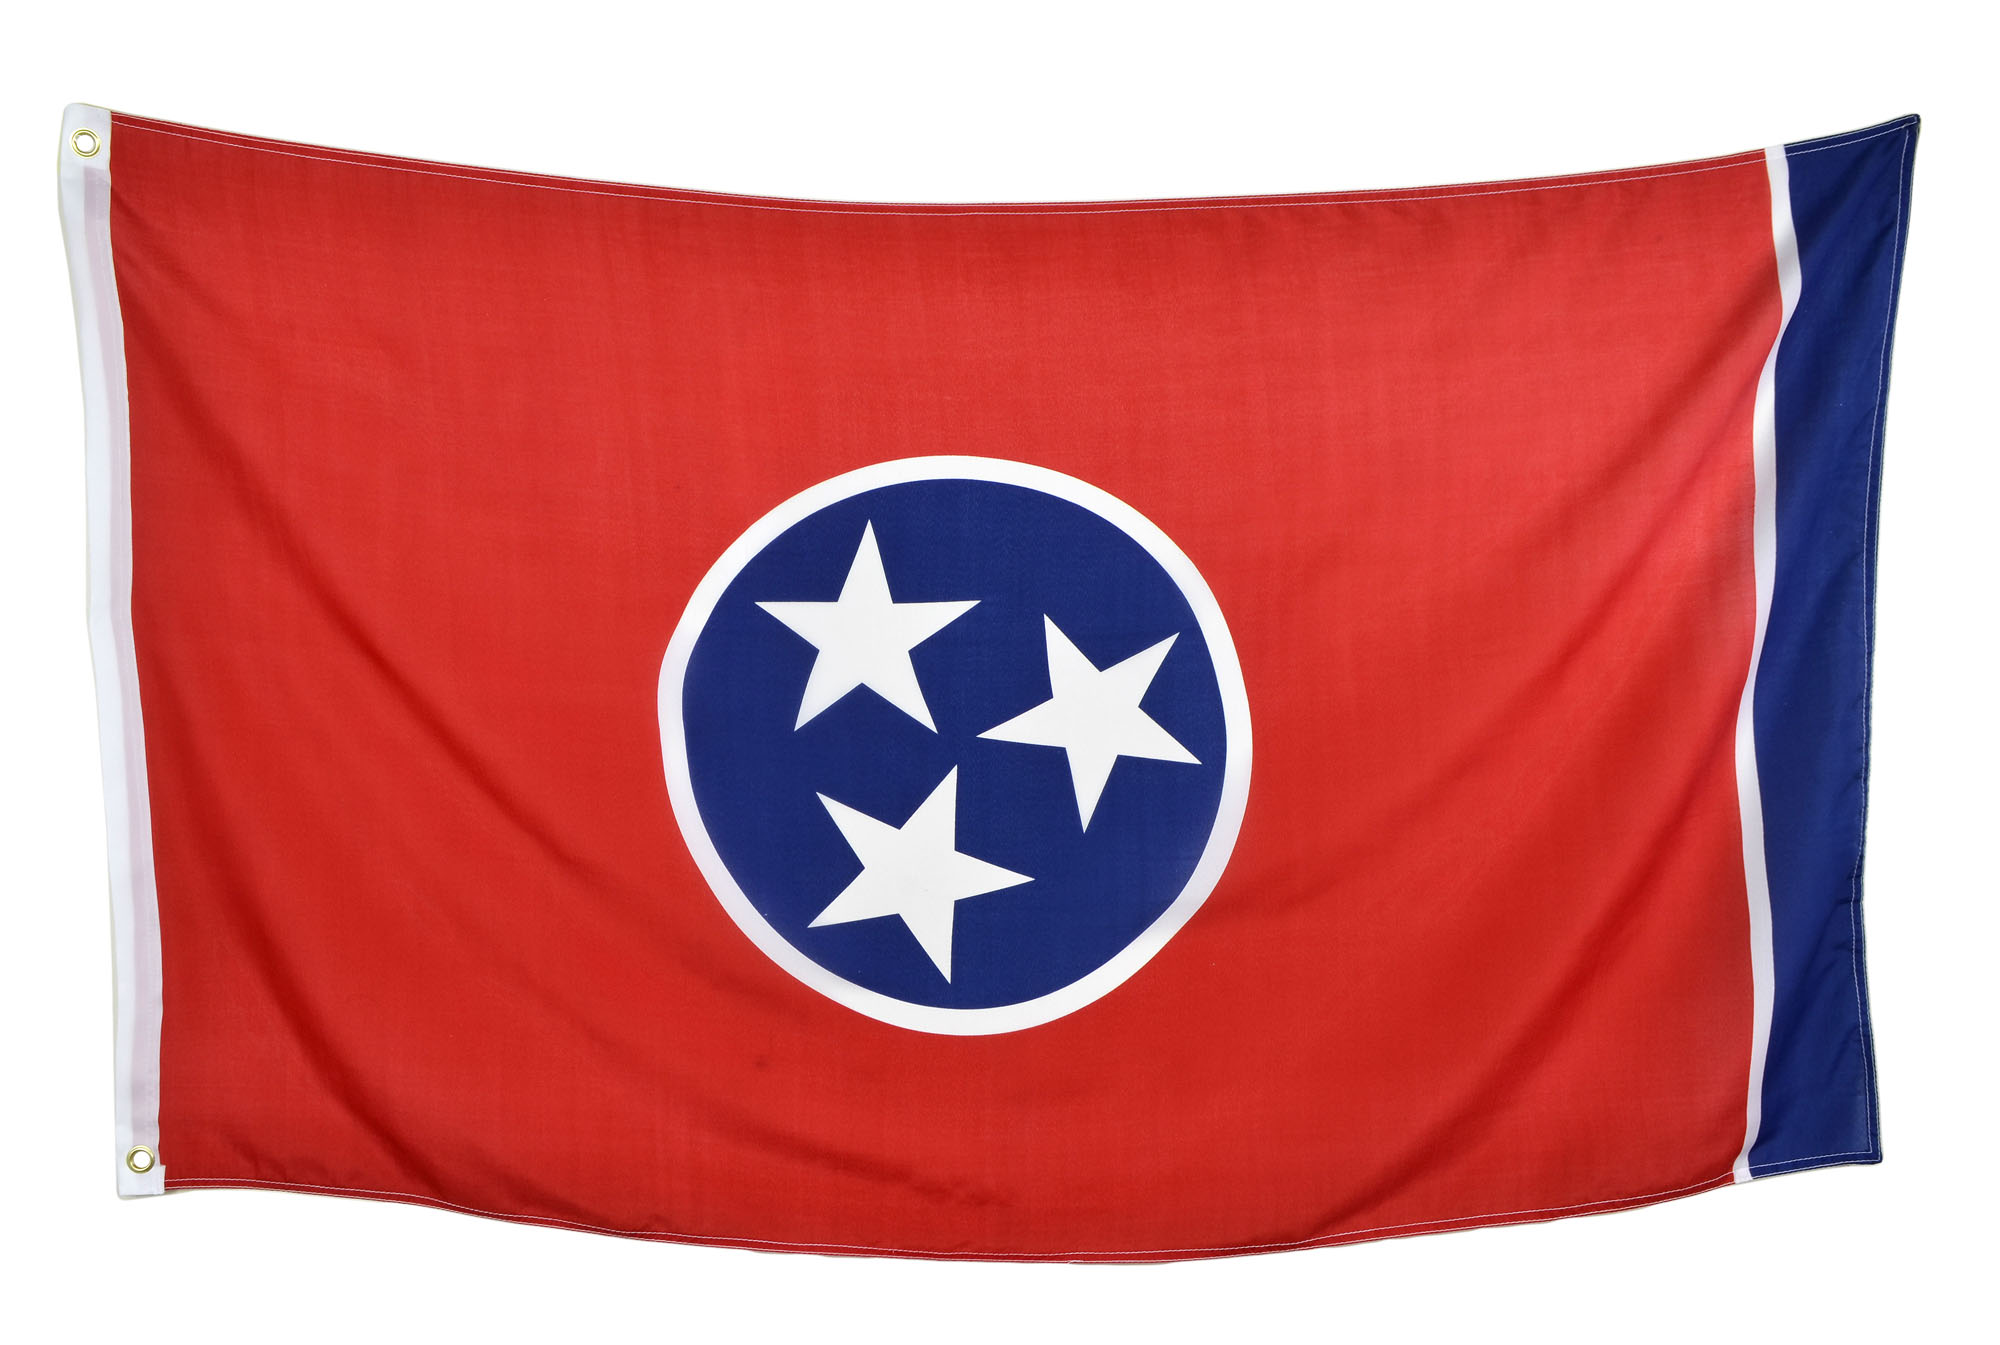 Shop72 US State Flags - Tennessee - 3x5' Flag from Sturdy 100D Polyester - Canvas Header Brass Grommets Double Stitched from Wind Side